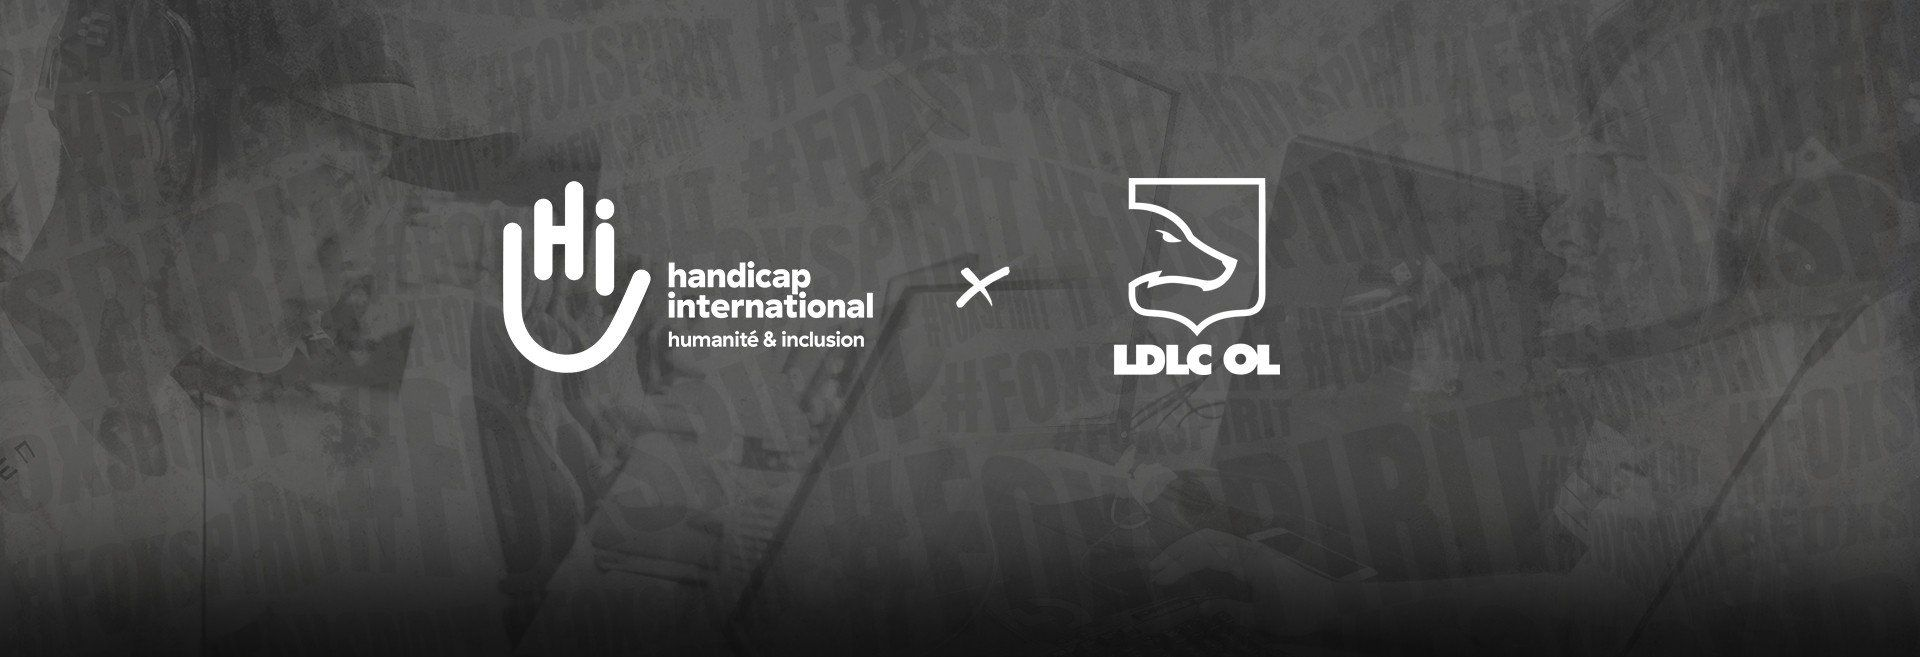 LDLC OL s'associe à Handicap International